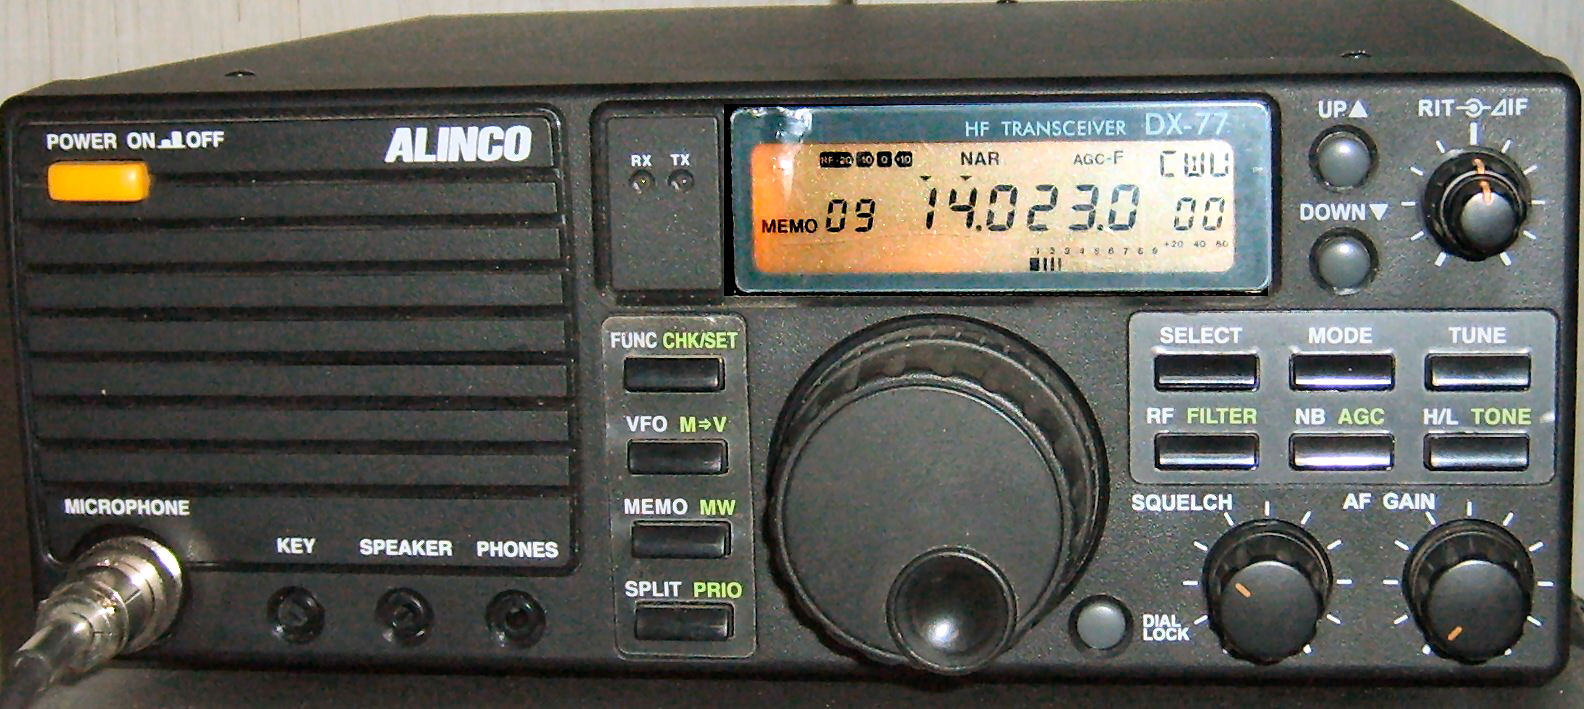 President Grant Classic 20 120ch besides Kenwood Trio TS 700 besides Yaesu FT 107M besides Cherokee Nightrider 20150 together with Ham 20International Concorde 20III. on tx rx radio